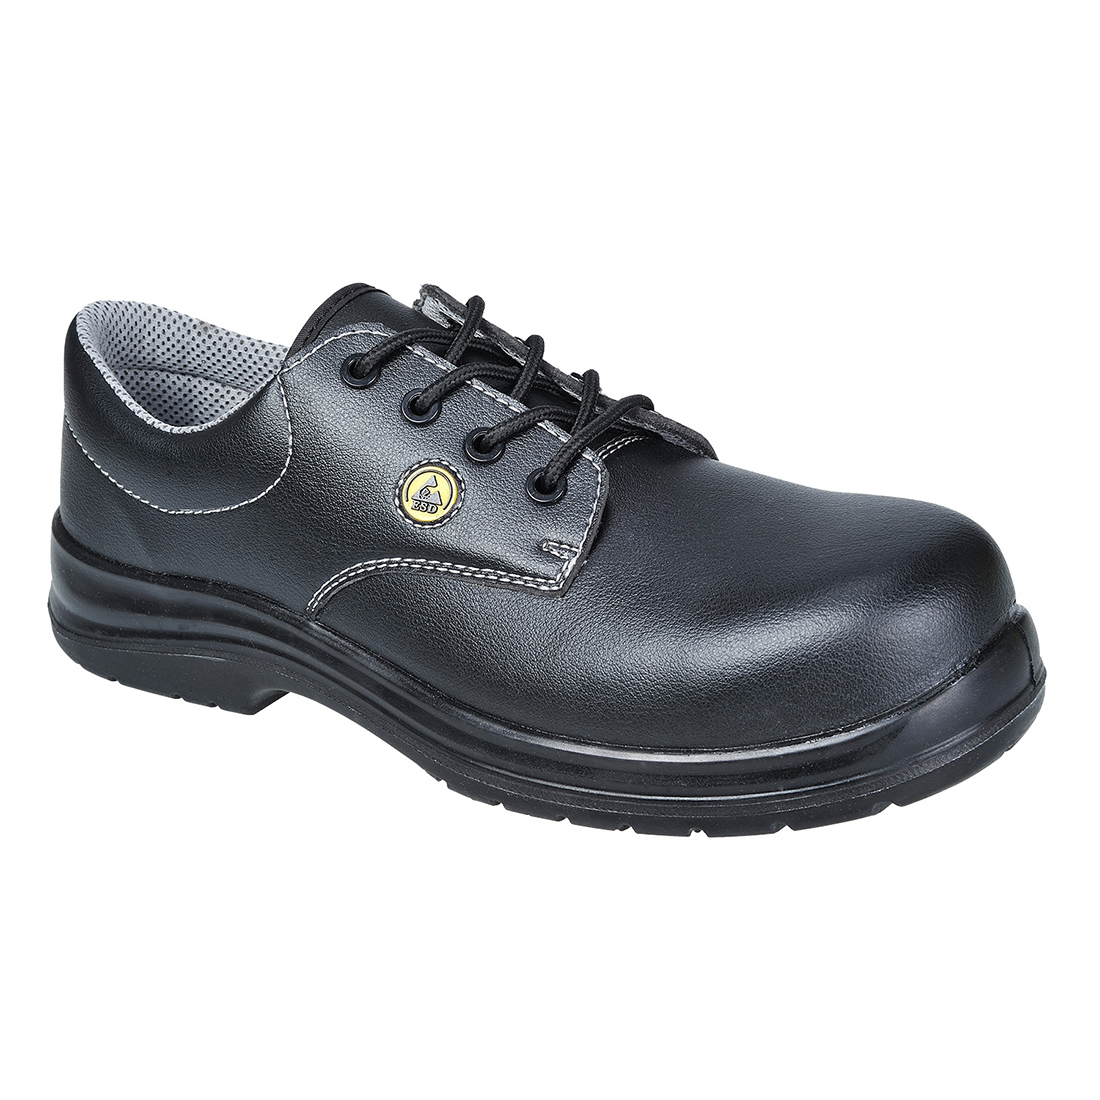 ESD Safety Shoe 36/3 S1 Black 36